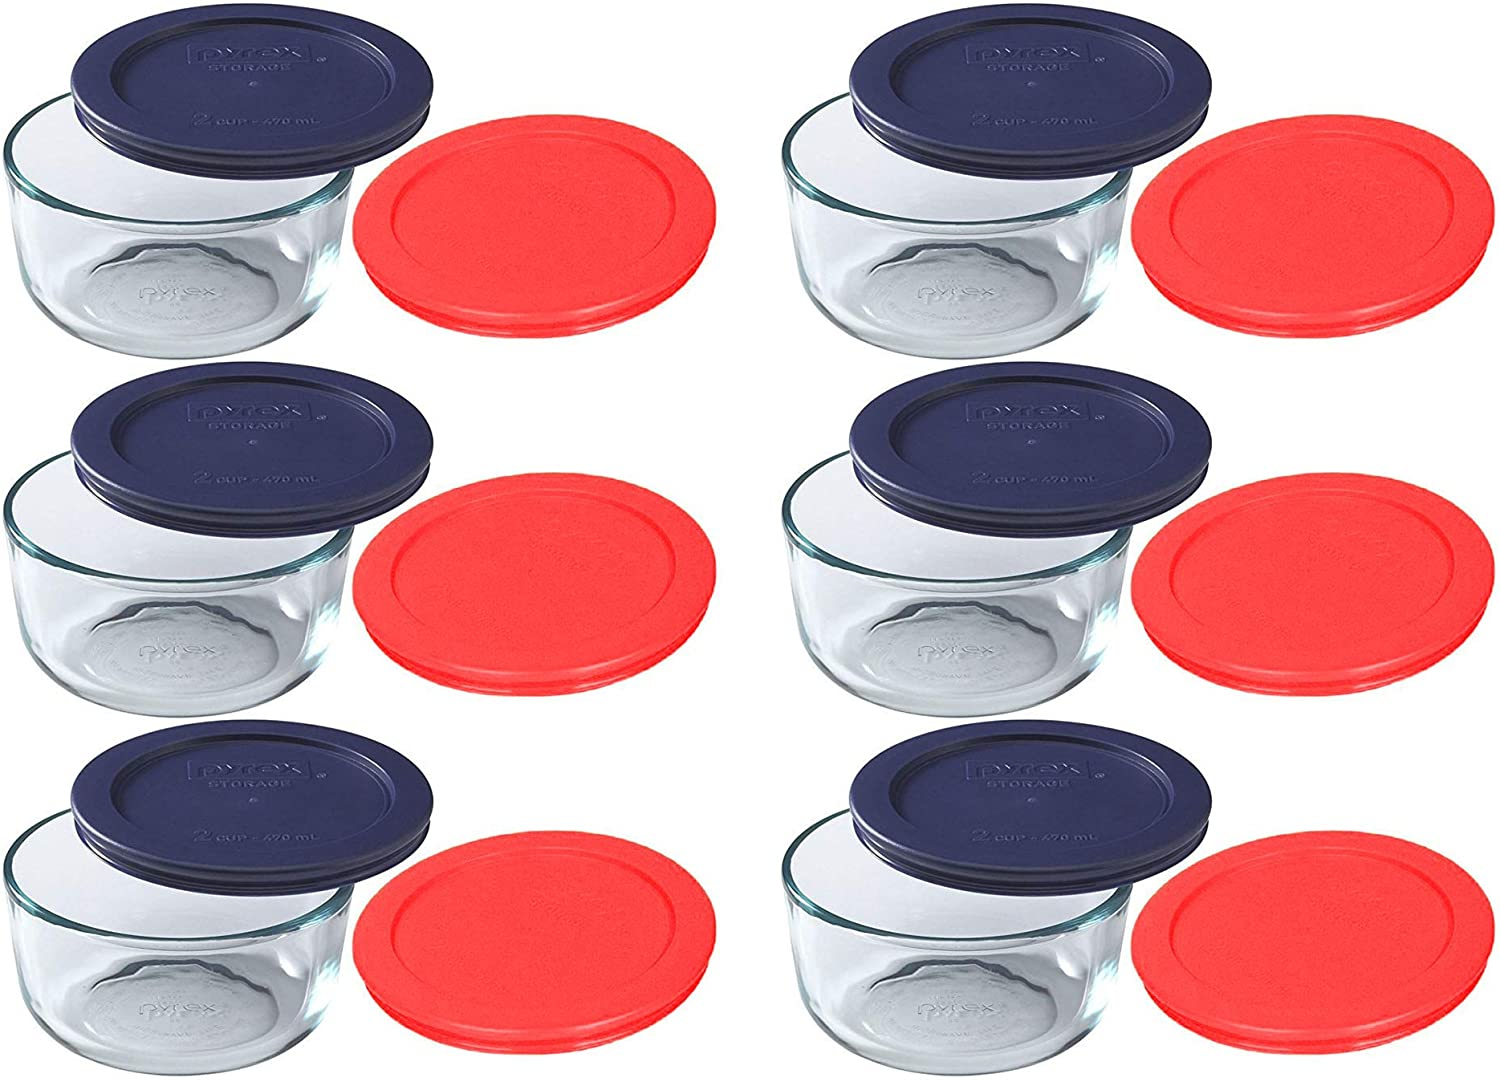 Pyrex Storage 2 Cup Round Dish, Clear with Red & Blue Lids, Pack of 6 Containers & 12 Lids